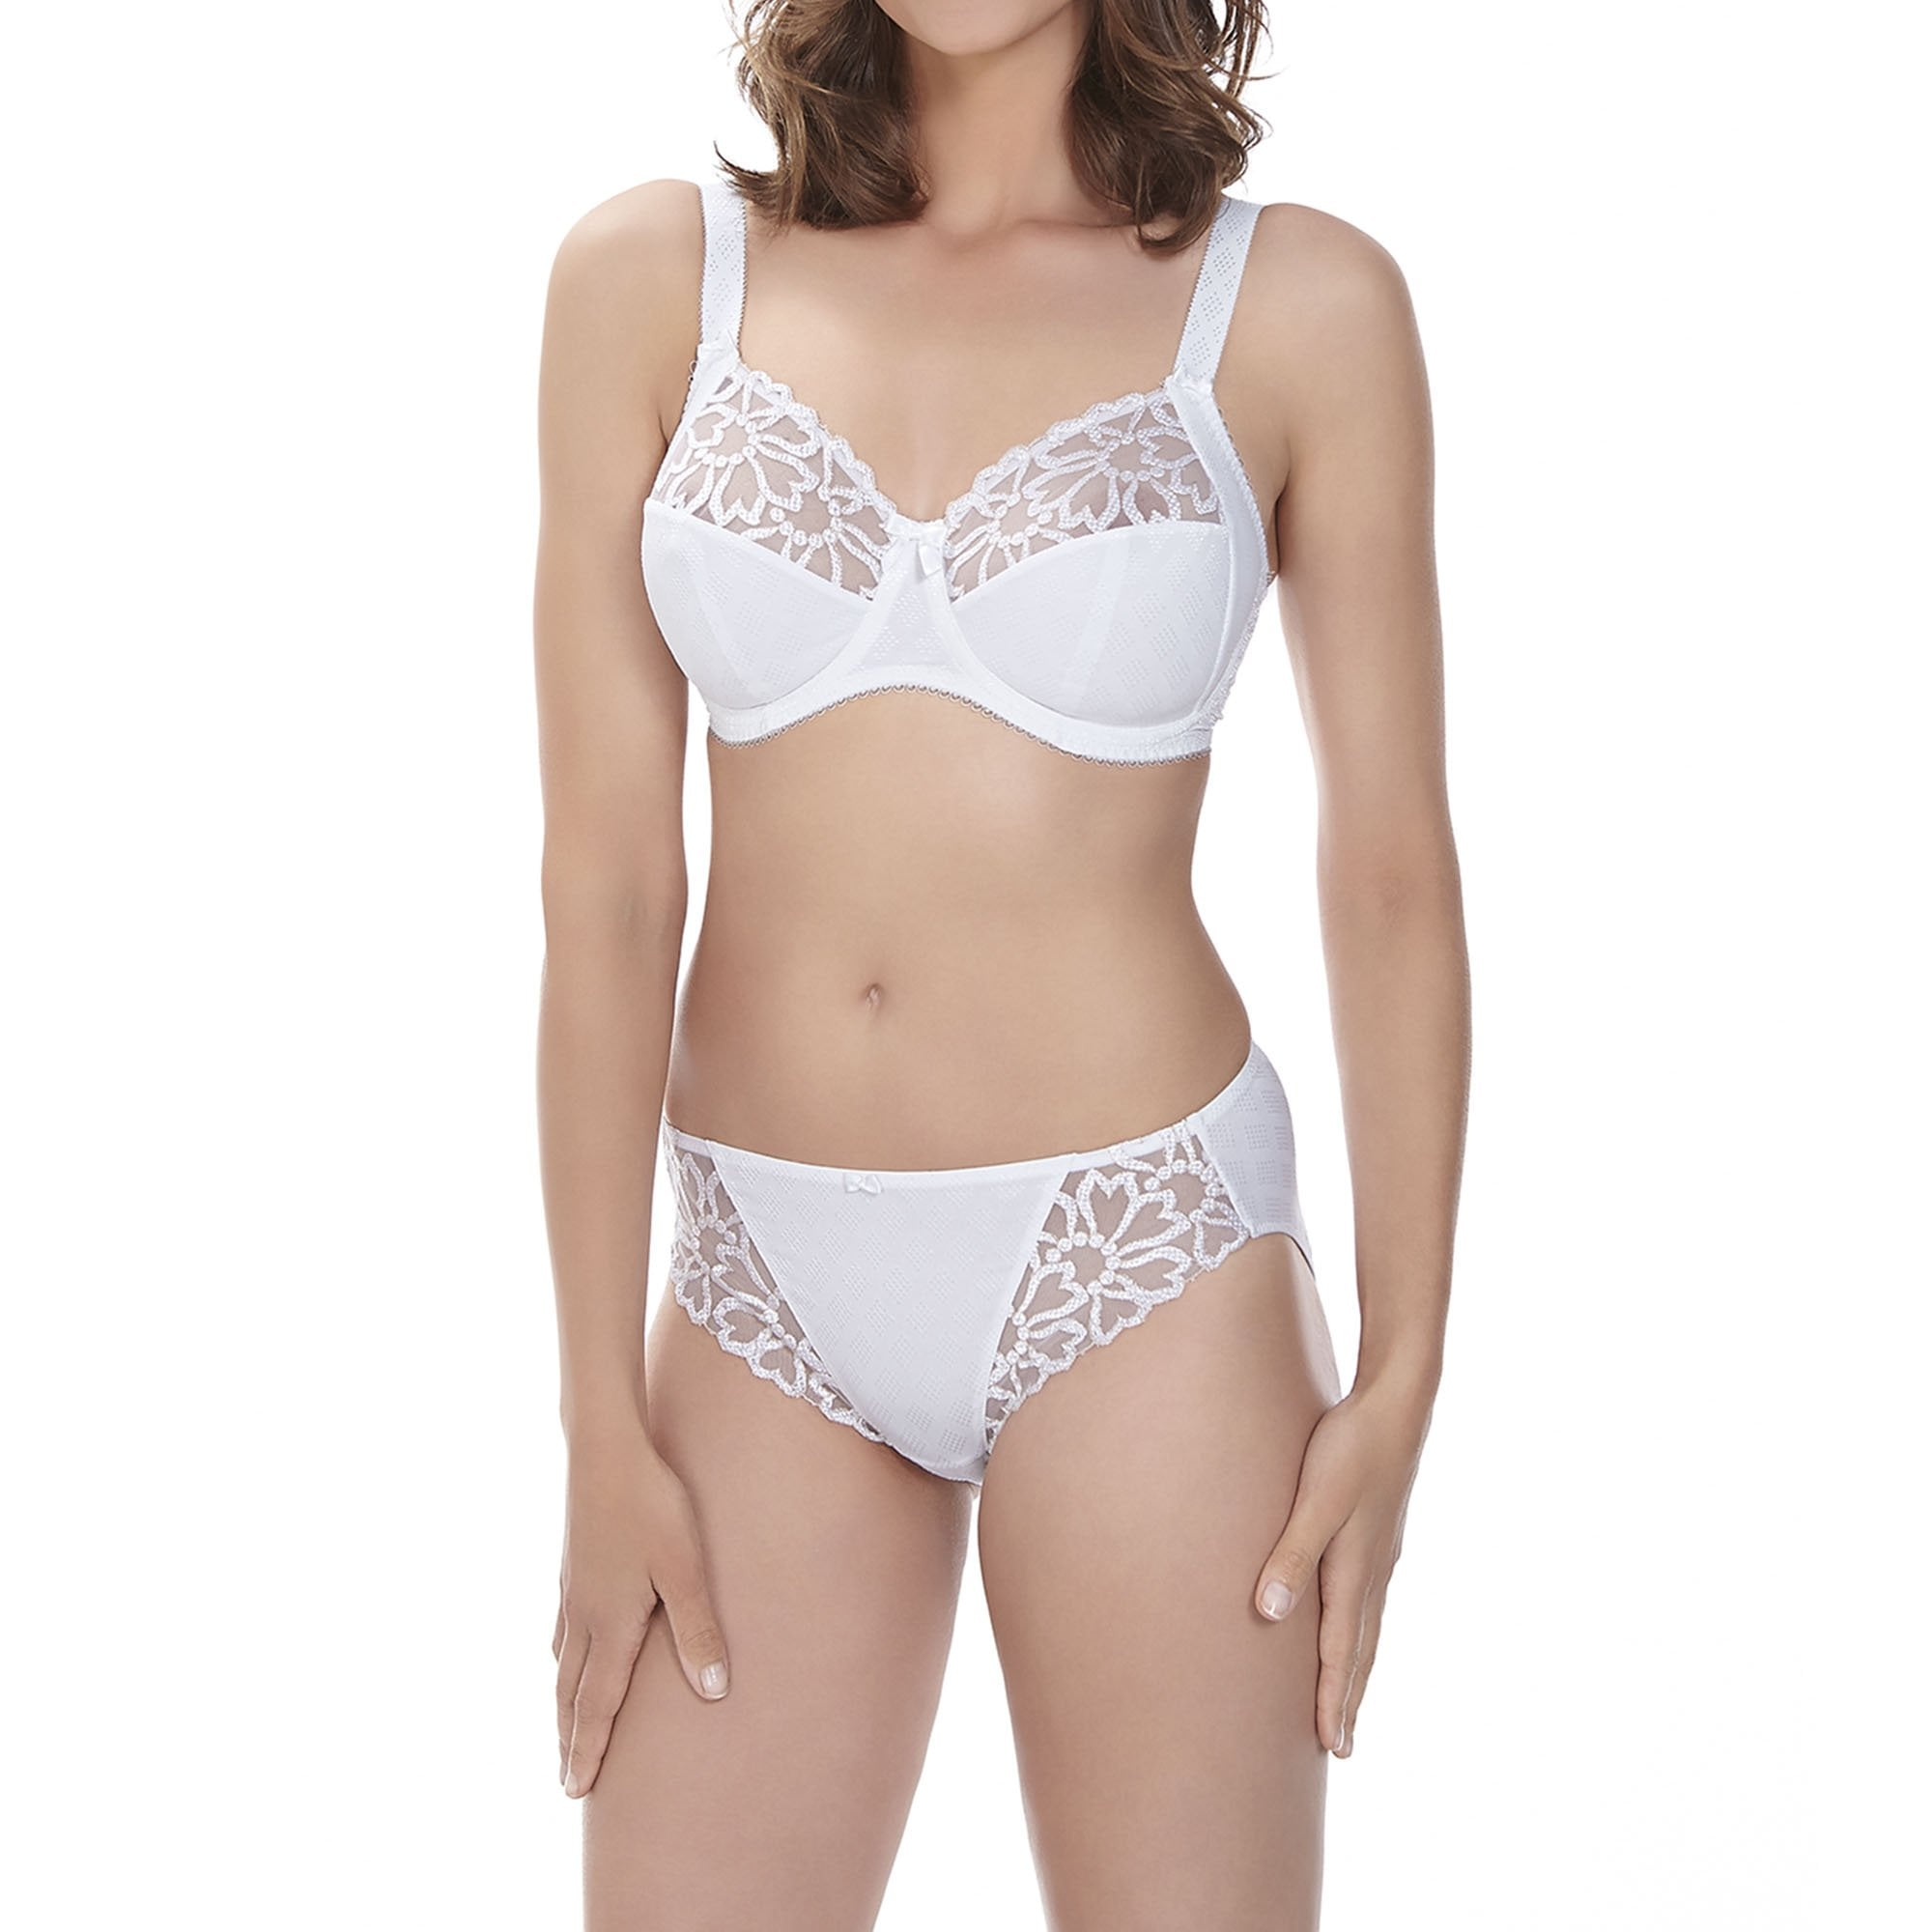 ef4c24d6a4243 Fantasie Jacqueline Lace UW Full Cup Bra In Ivory